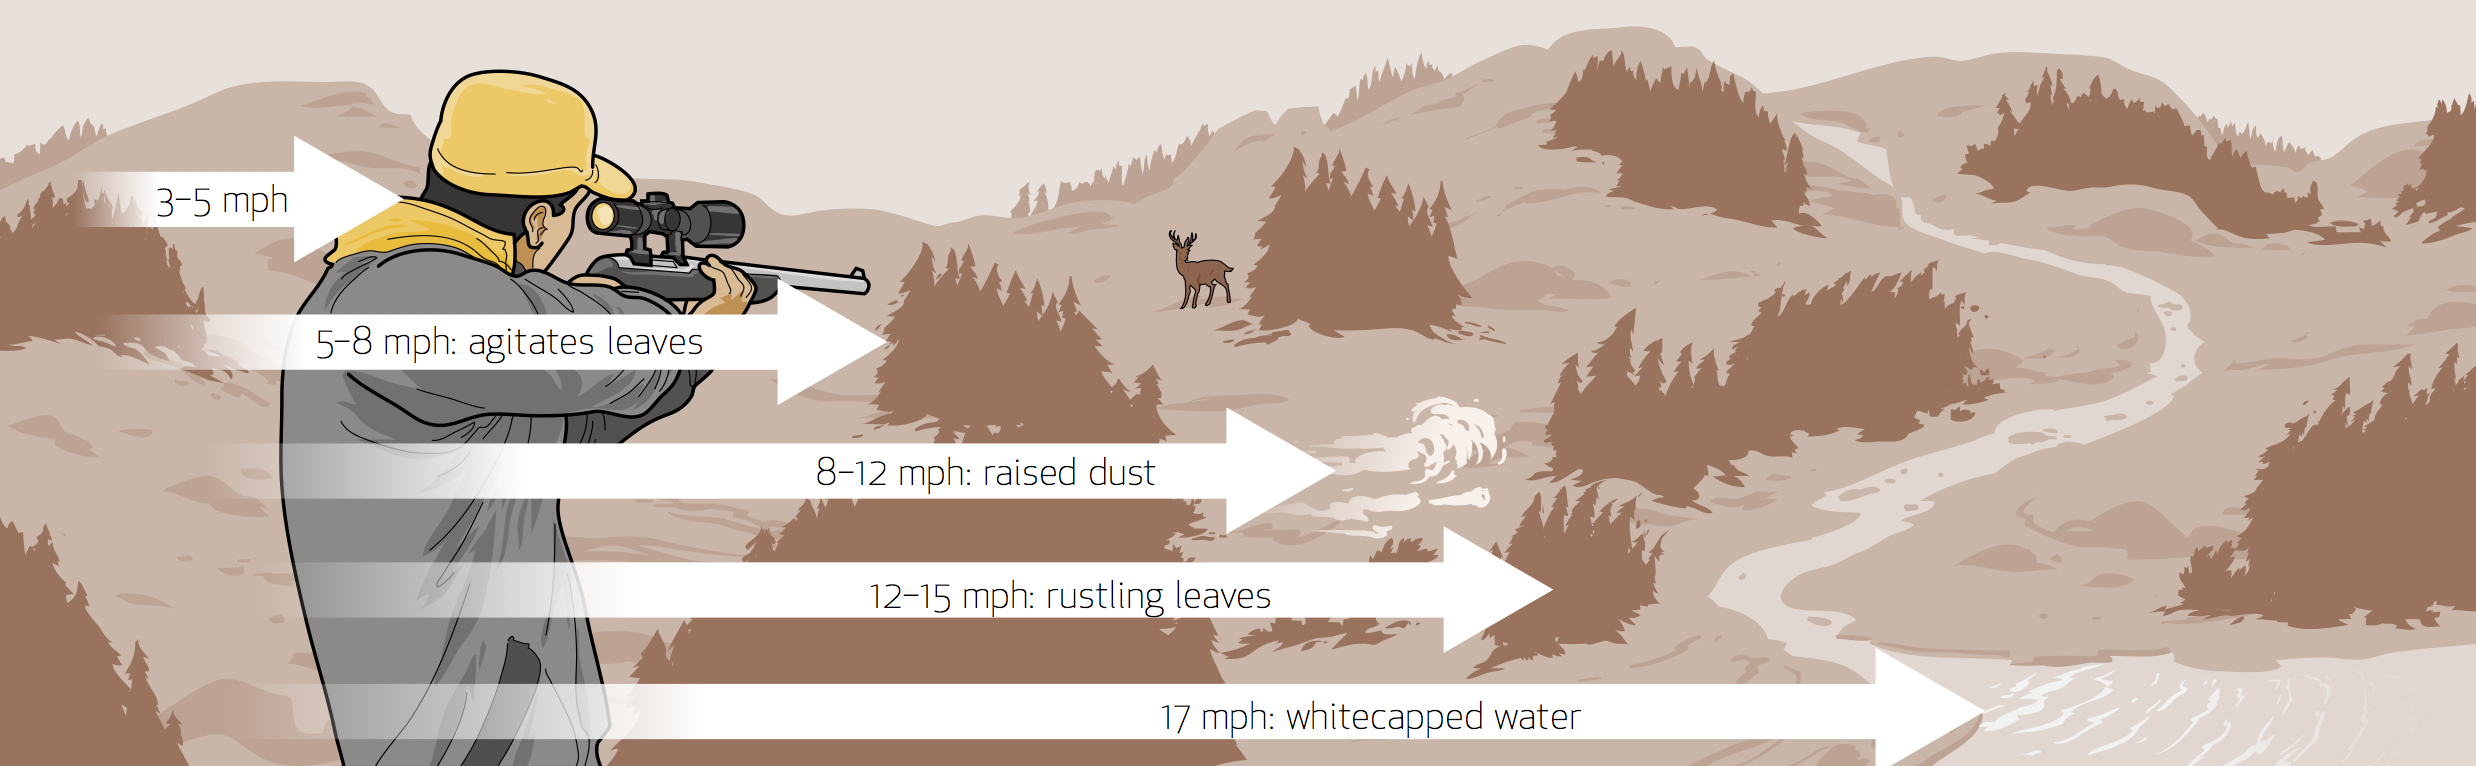 Shooting Tips: Clues to Help You Read the Wind